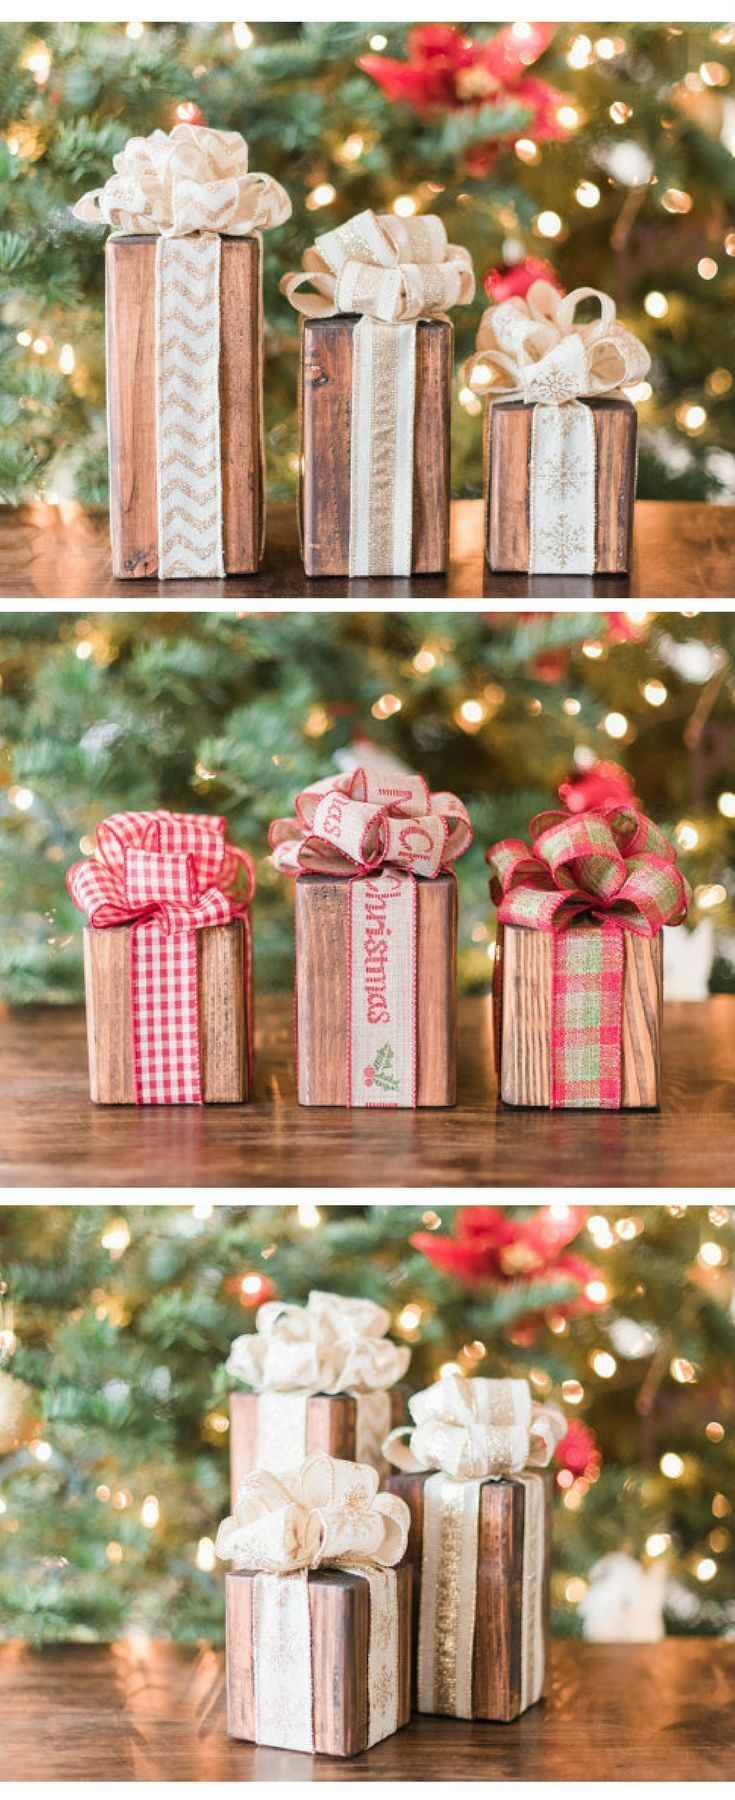 Best wood crafts ideas on pinterest christmas